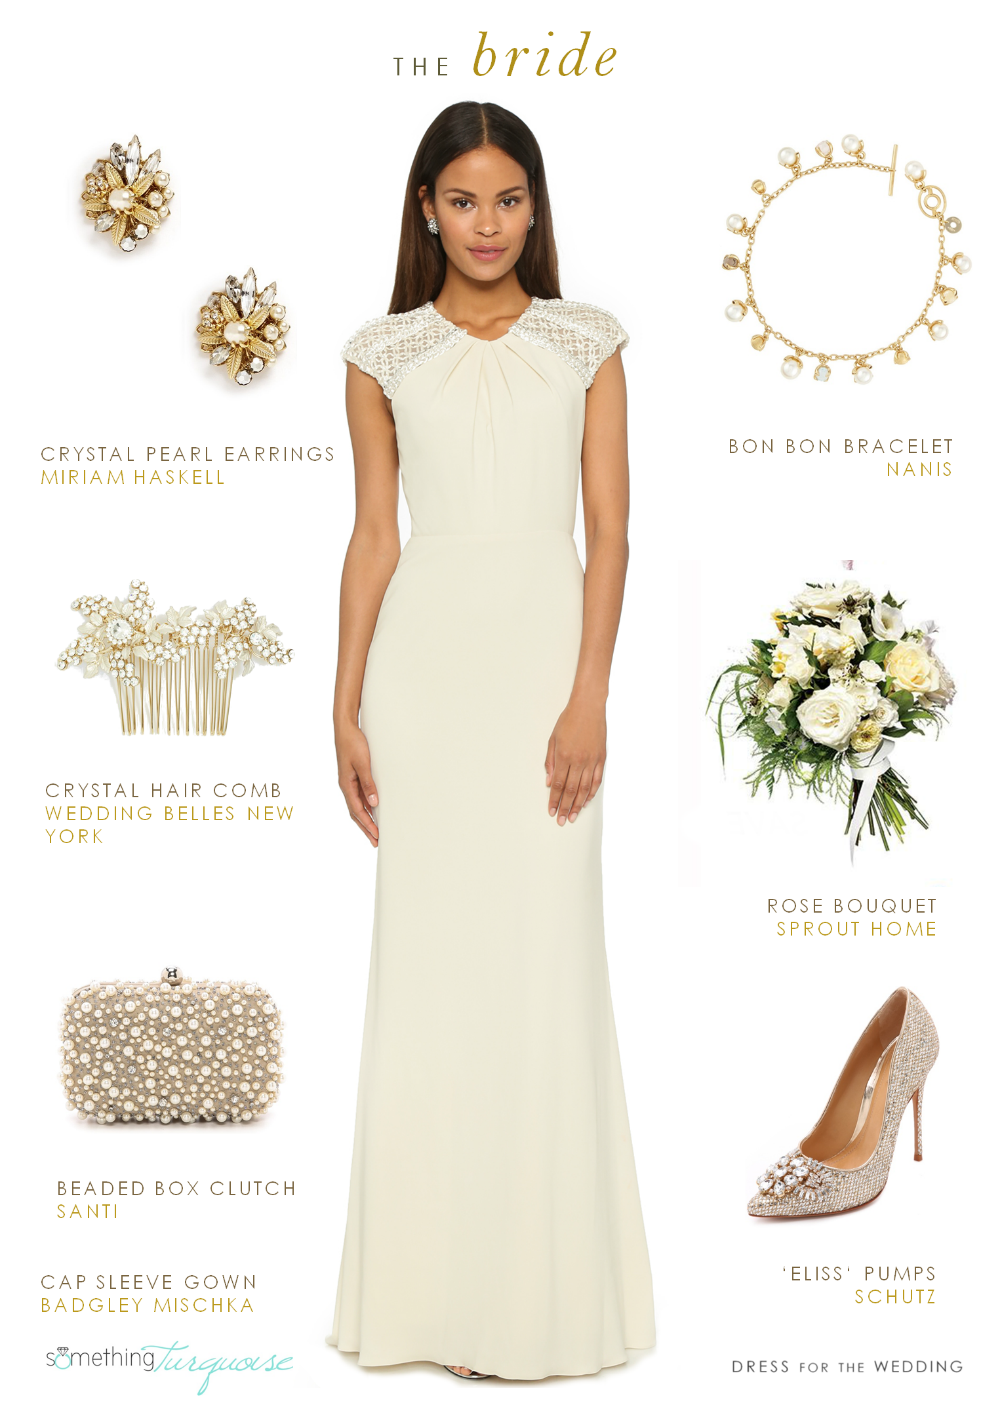 Fall Wedding Fashion Ideas From Dress for the Wedding!